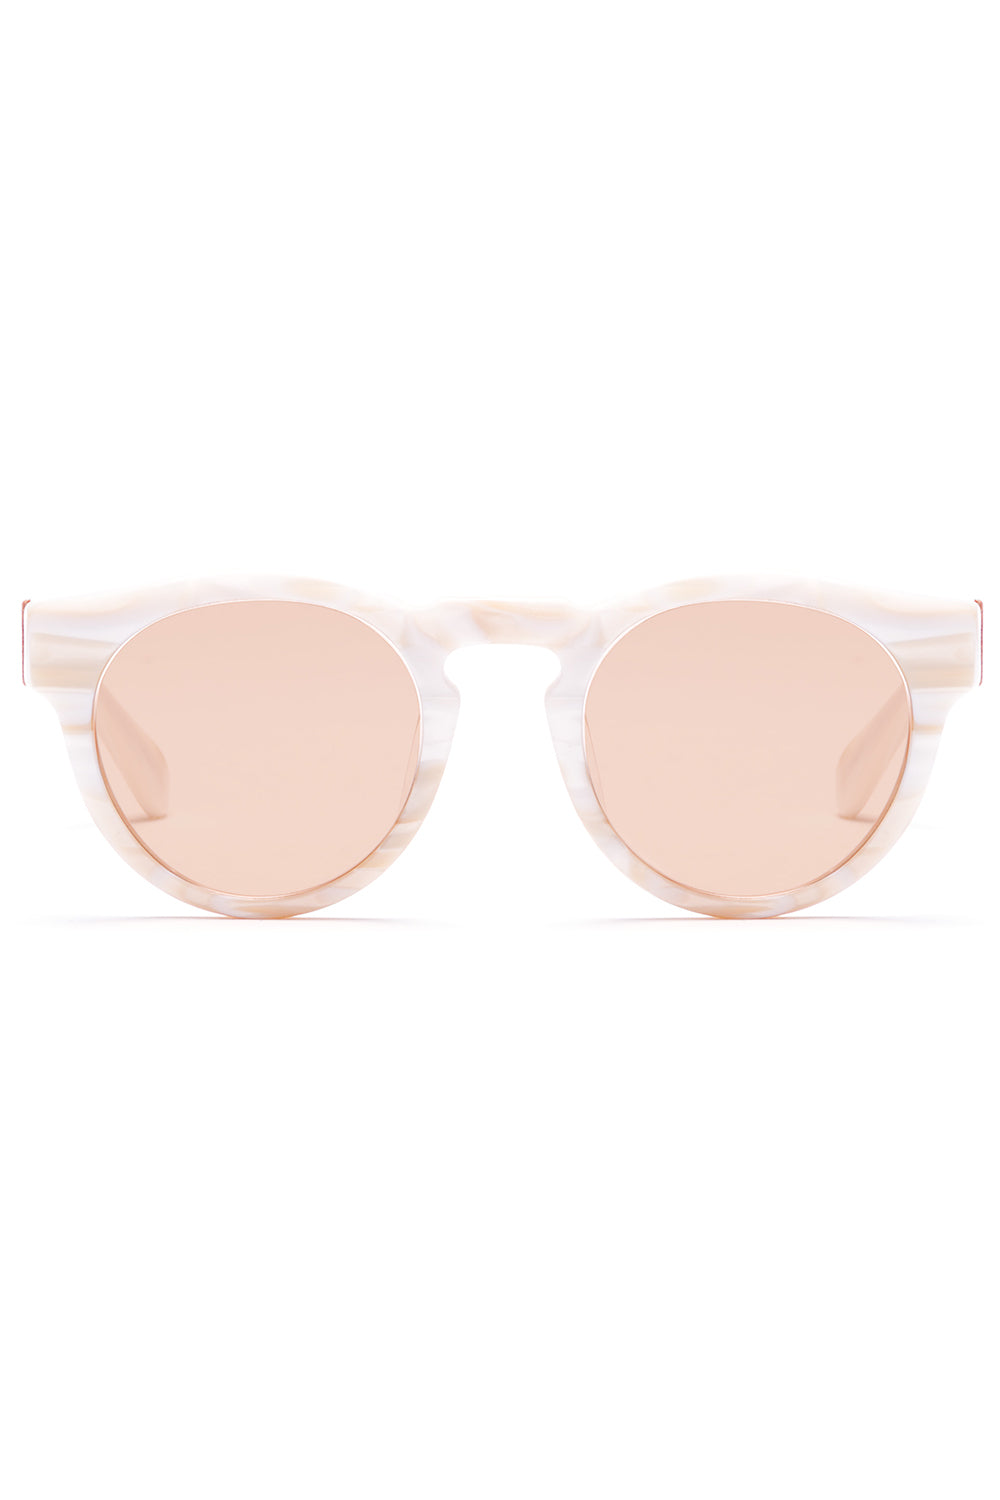 Voyager 35 Sunglasses in Polished White Marble Acetate